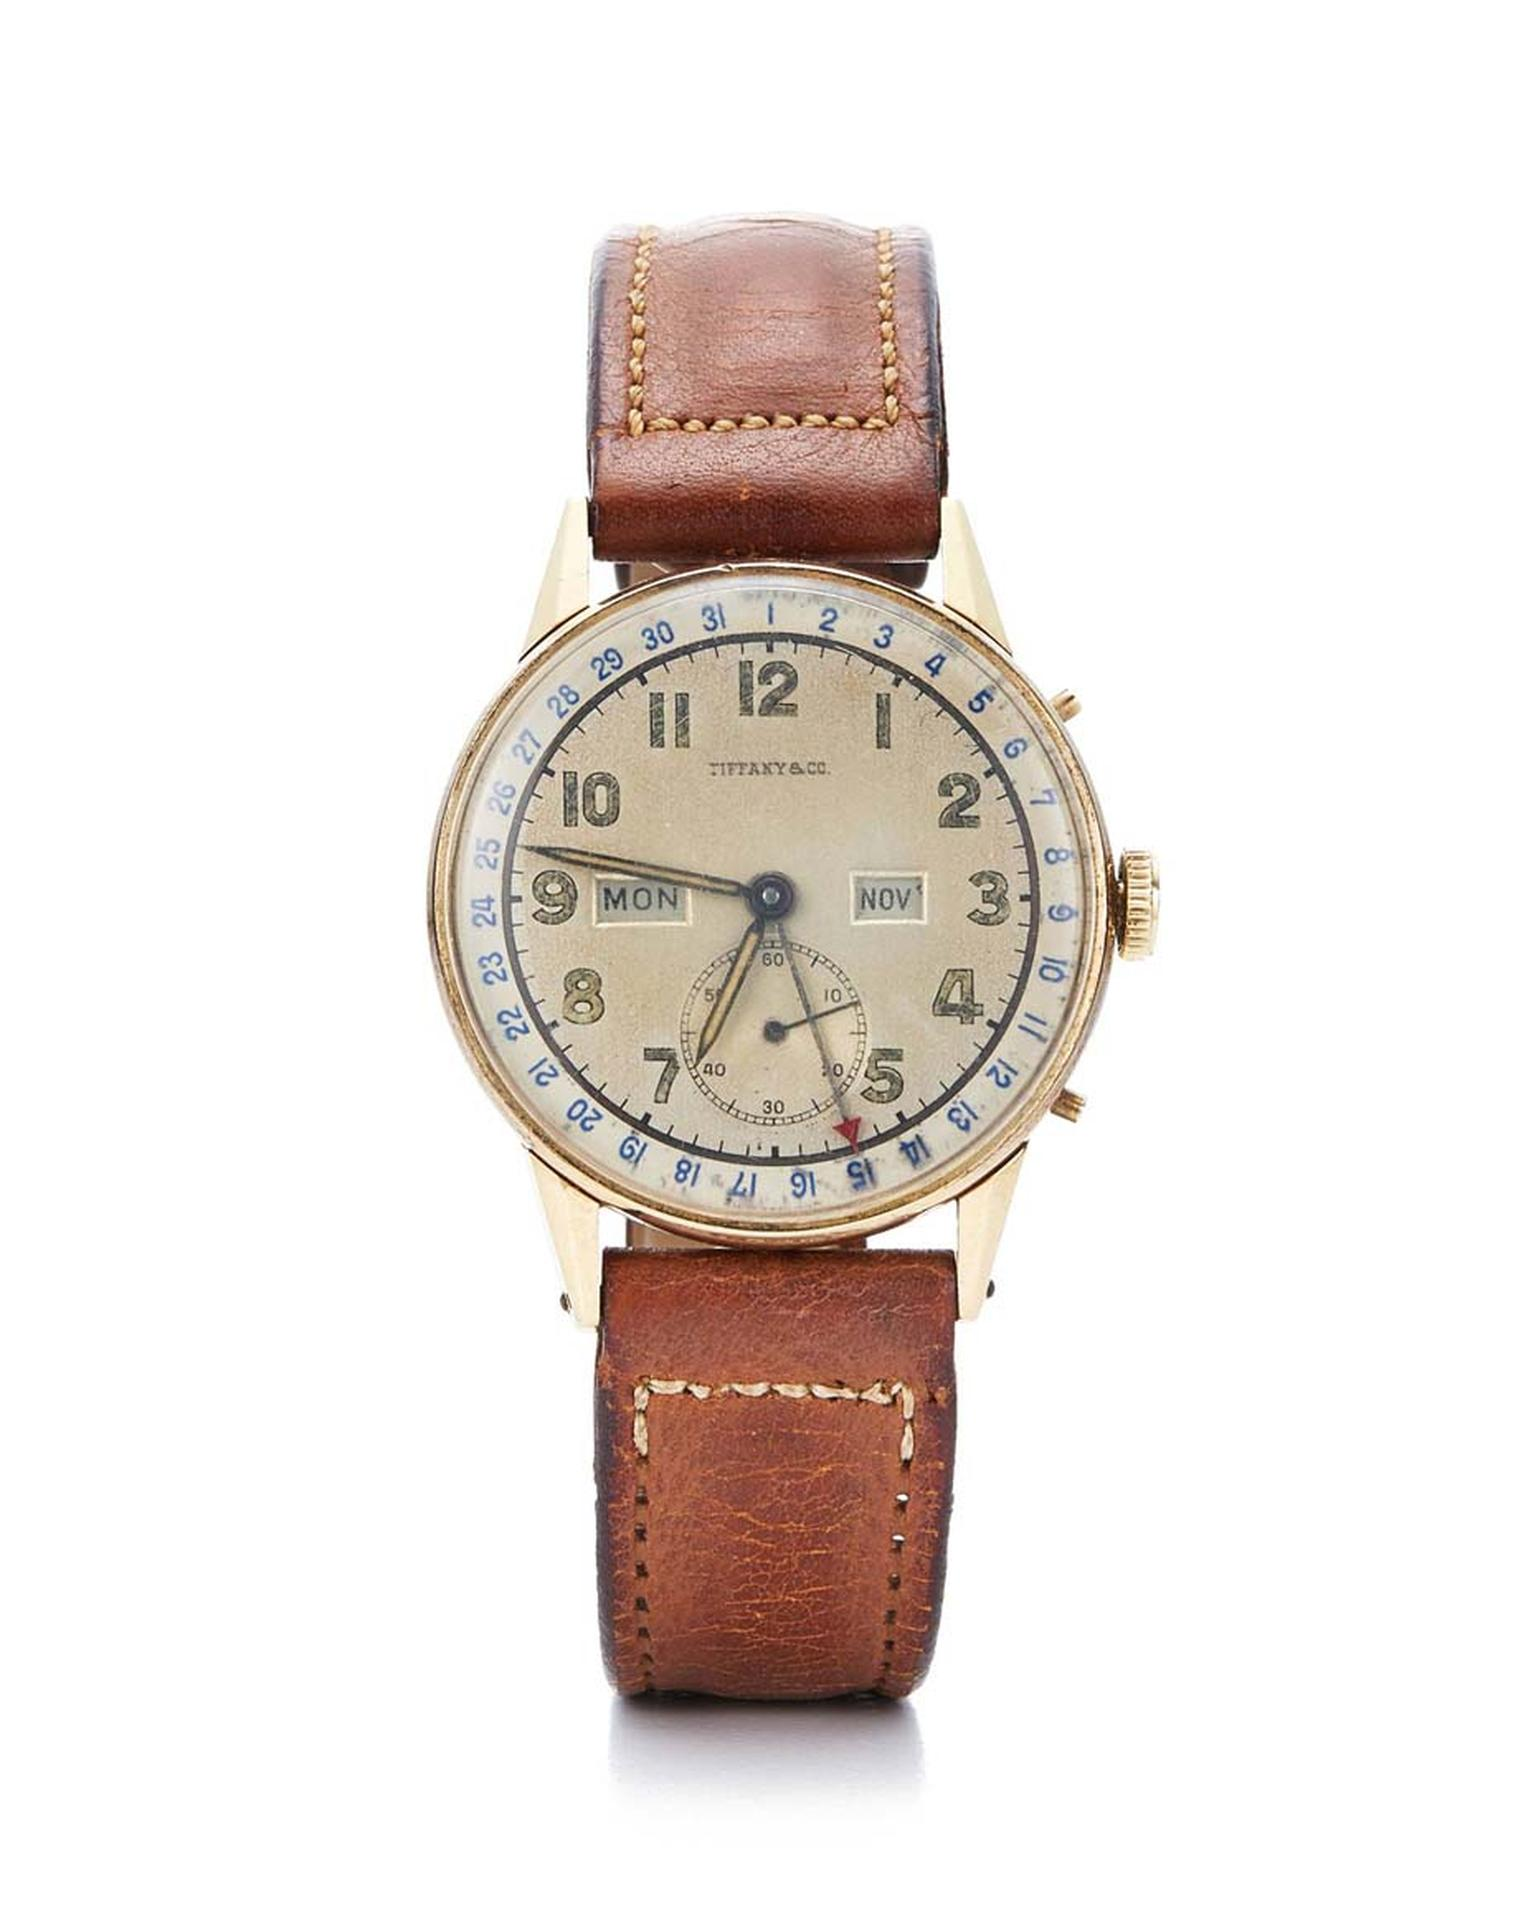 The original Tiffany & Co. gold watch given to US President Franklin D. Roosevelt on his birthday in 1945, and the inspiration behind the CT60 collection. With its day, date, month, small seconds and chronograph functions, Roosevelt wore his watch to the